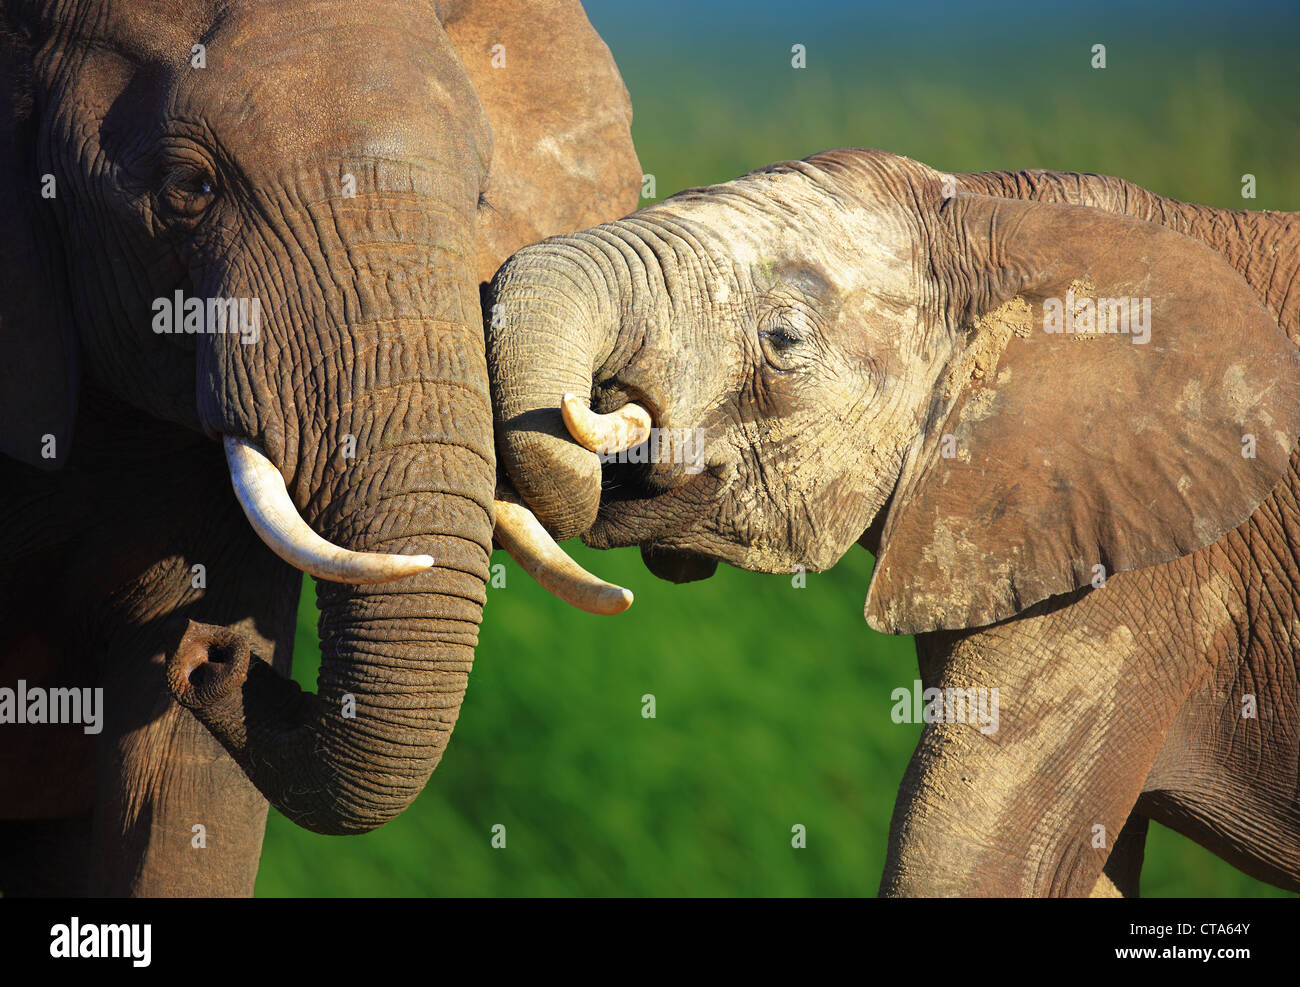 Elephants touching each other gently - Addo National Park - South Africa - Stock Image